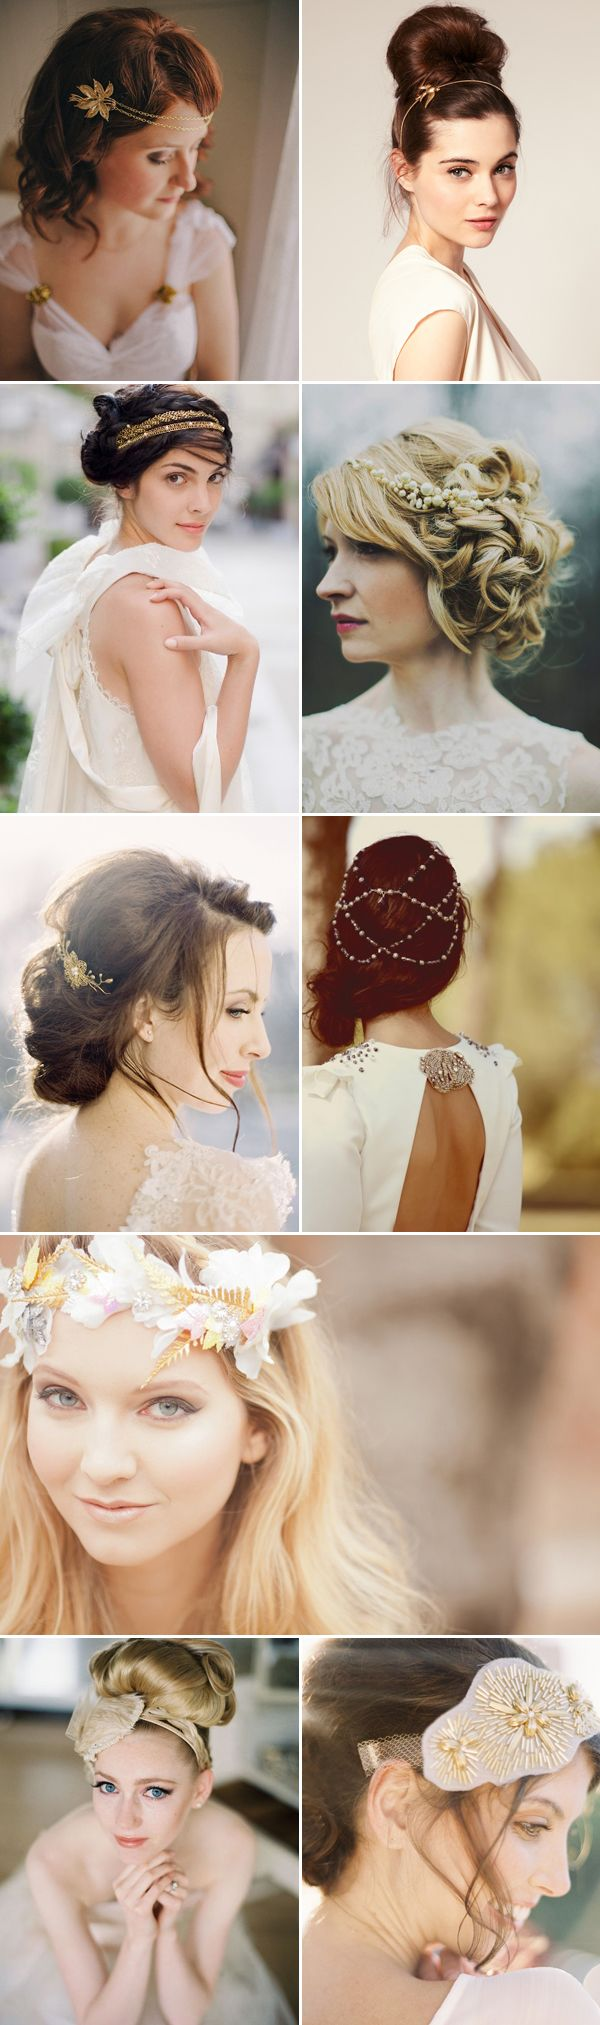 27 Bridal Hairstyles for Fall Weddings - Gold & Jewelry